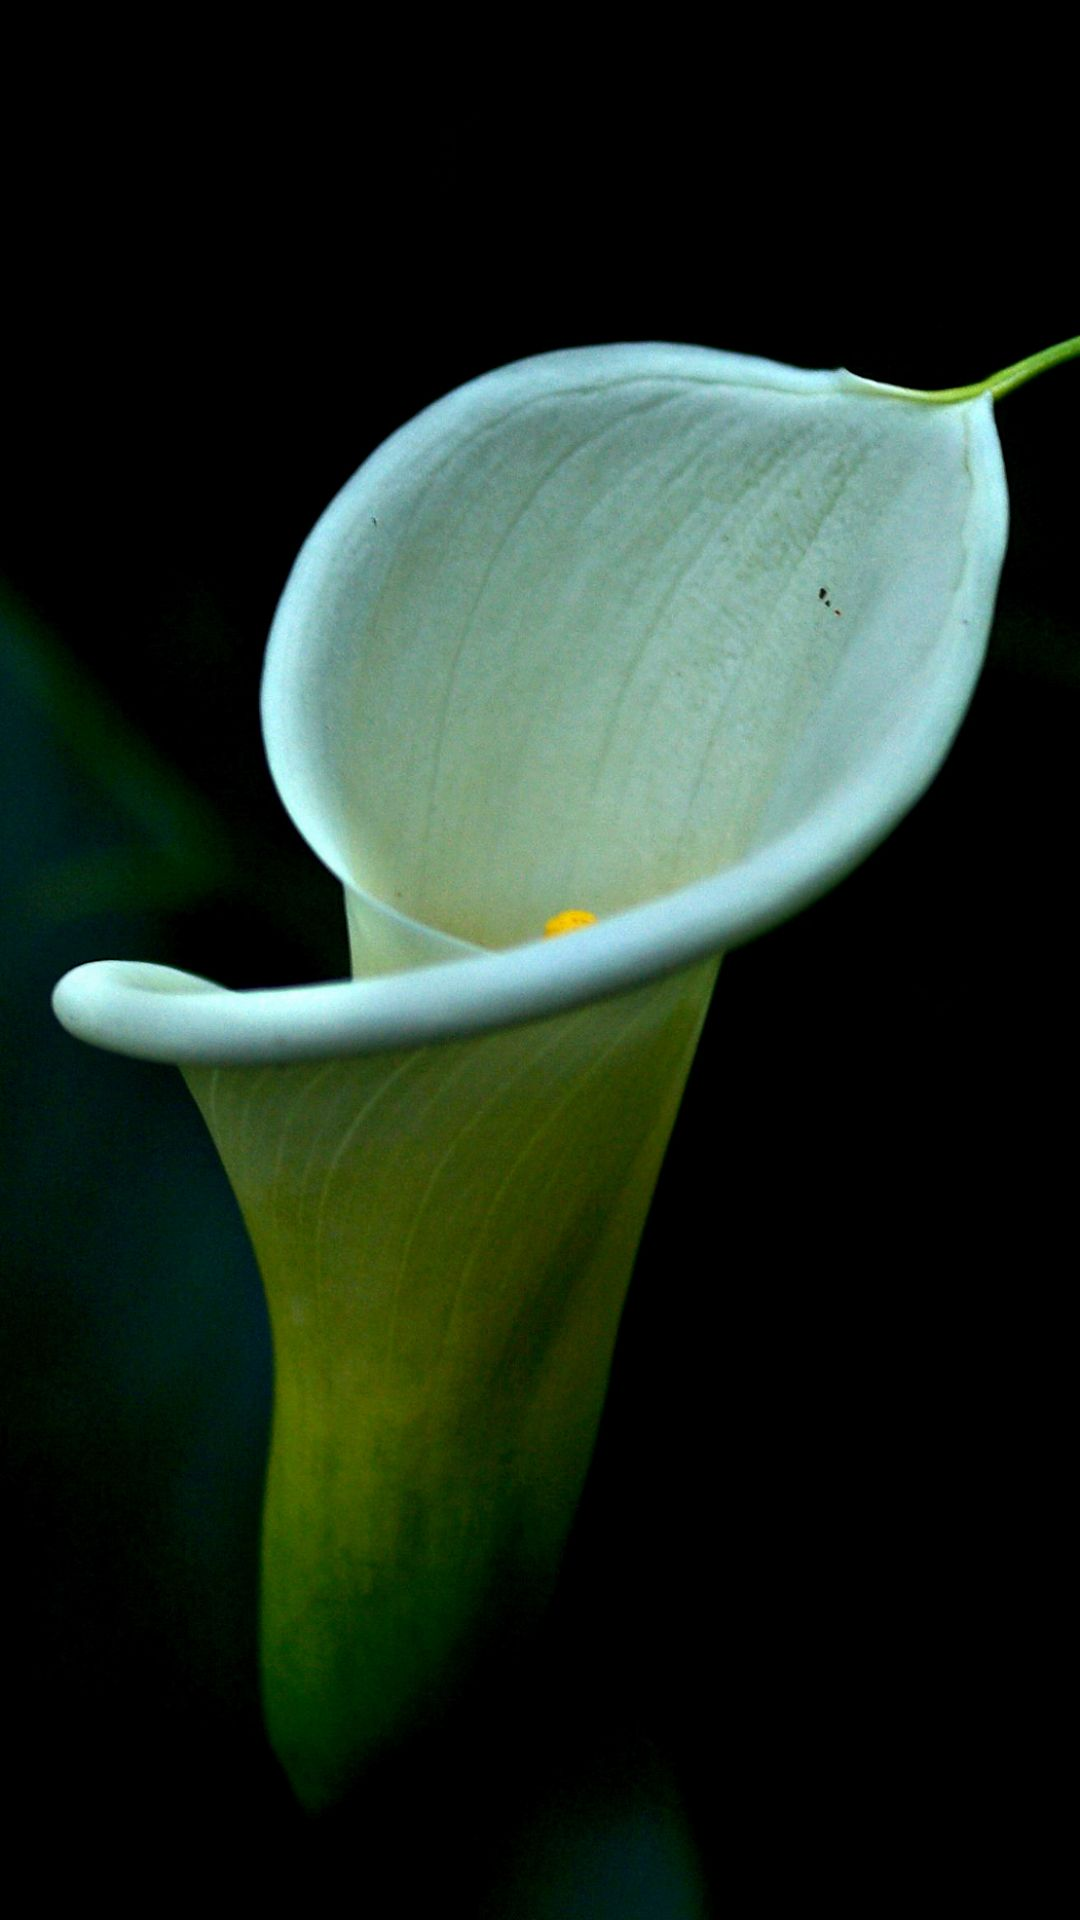 Earth Calla Lily Flowers Flower Mobile Wallpaper